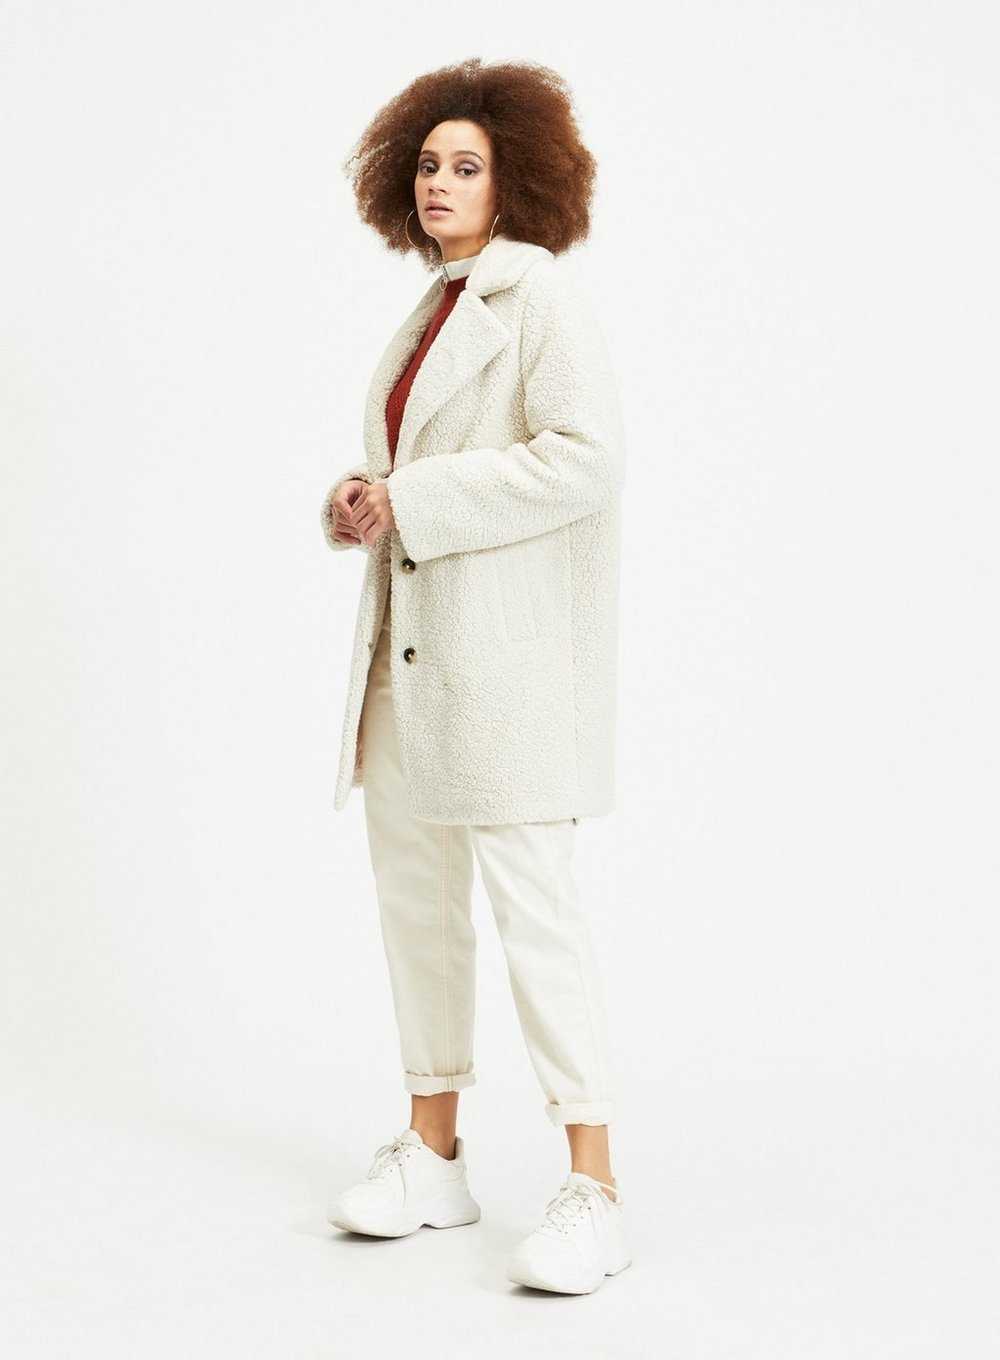 Miss Selfridge White Coat.jpg